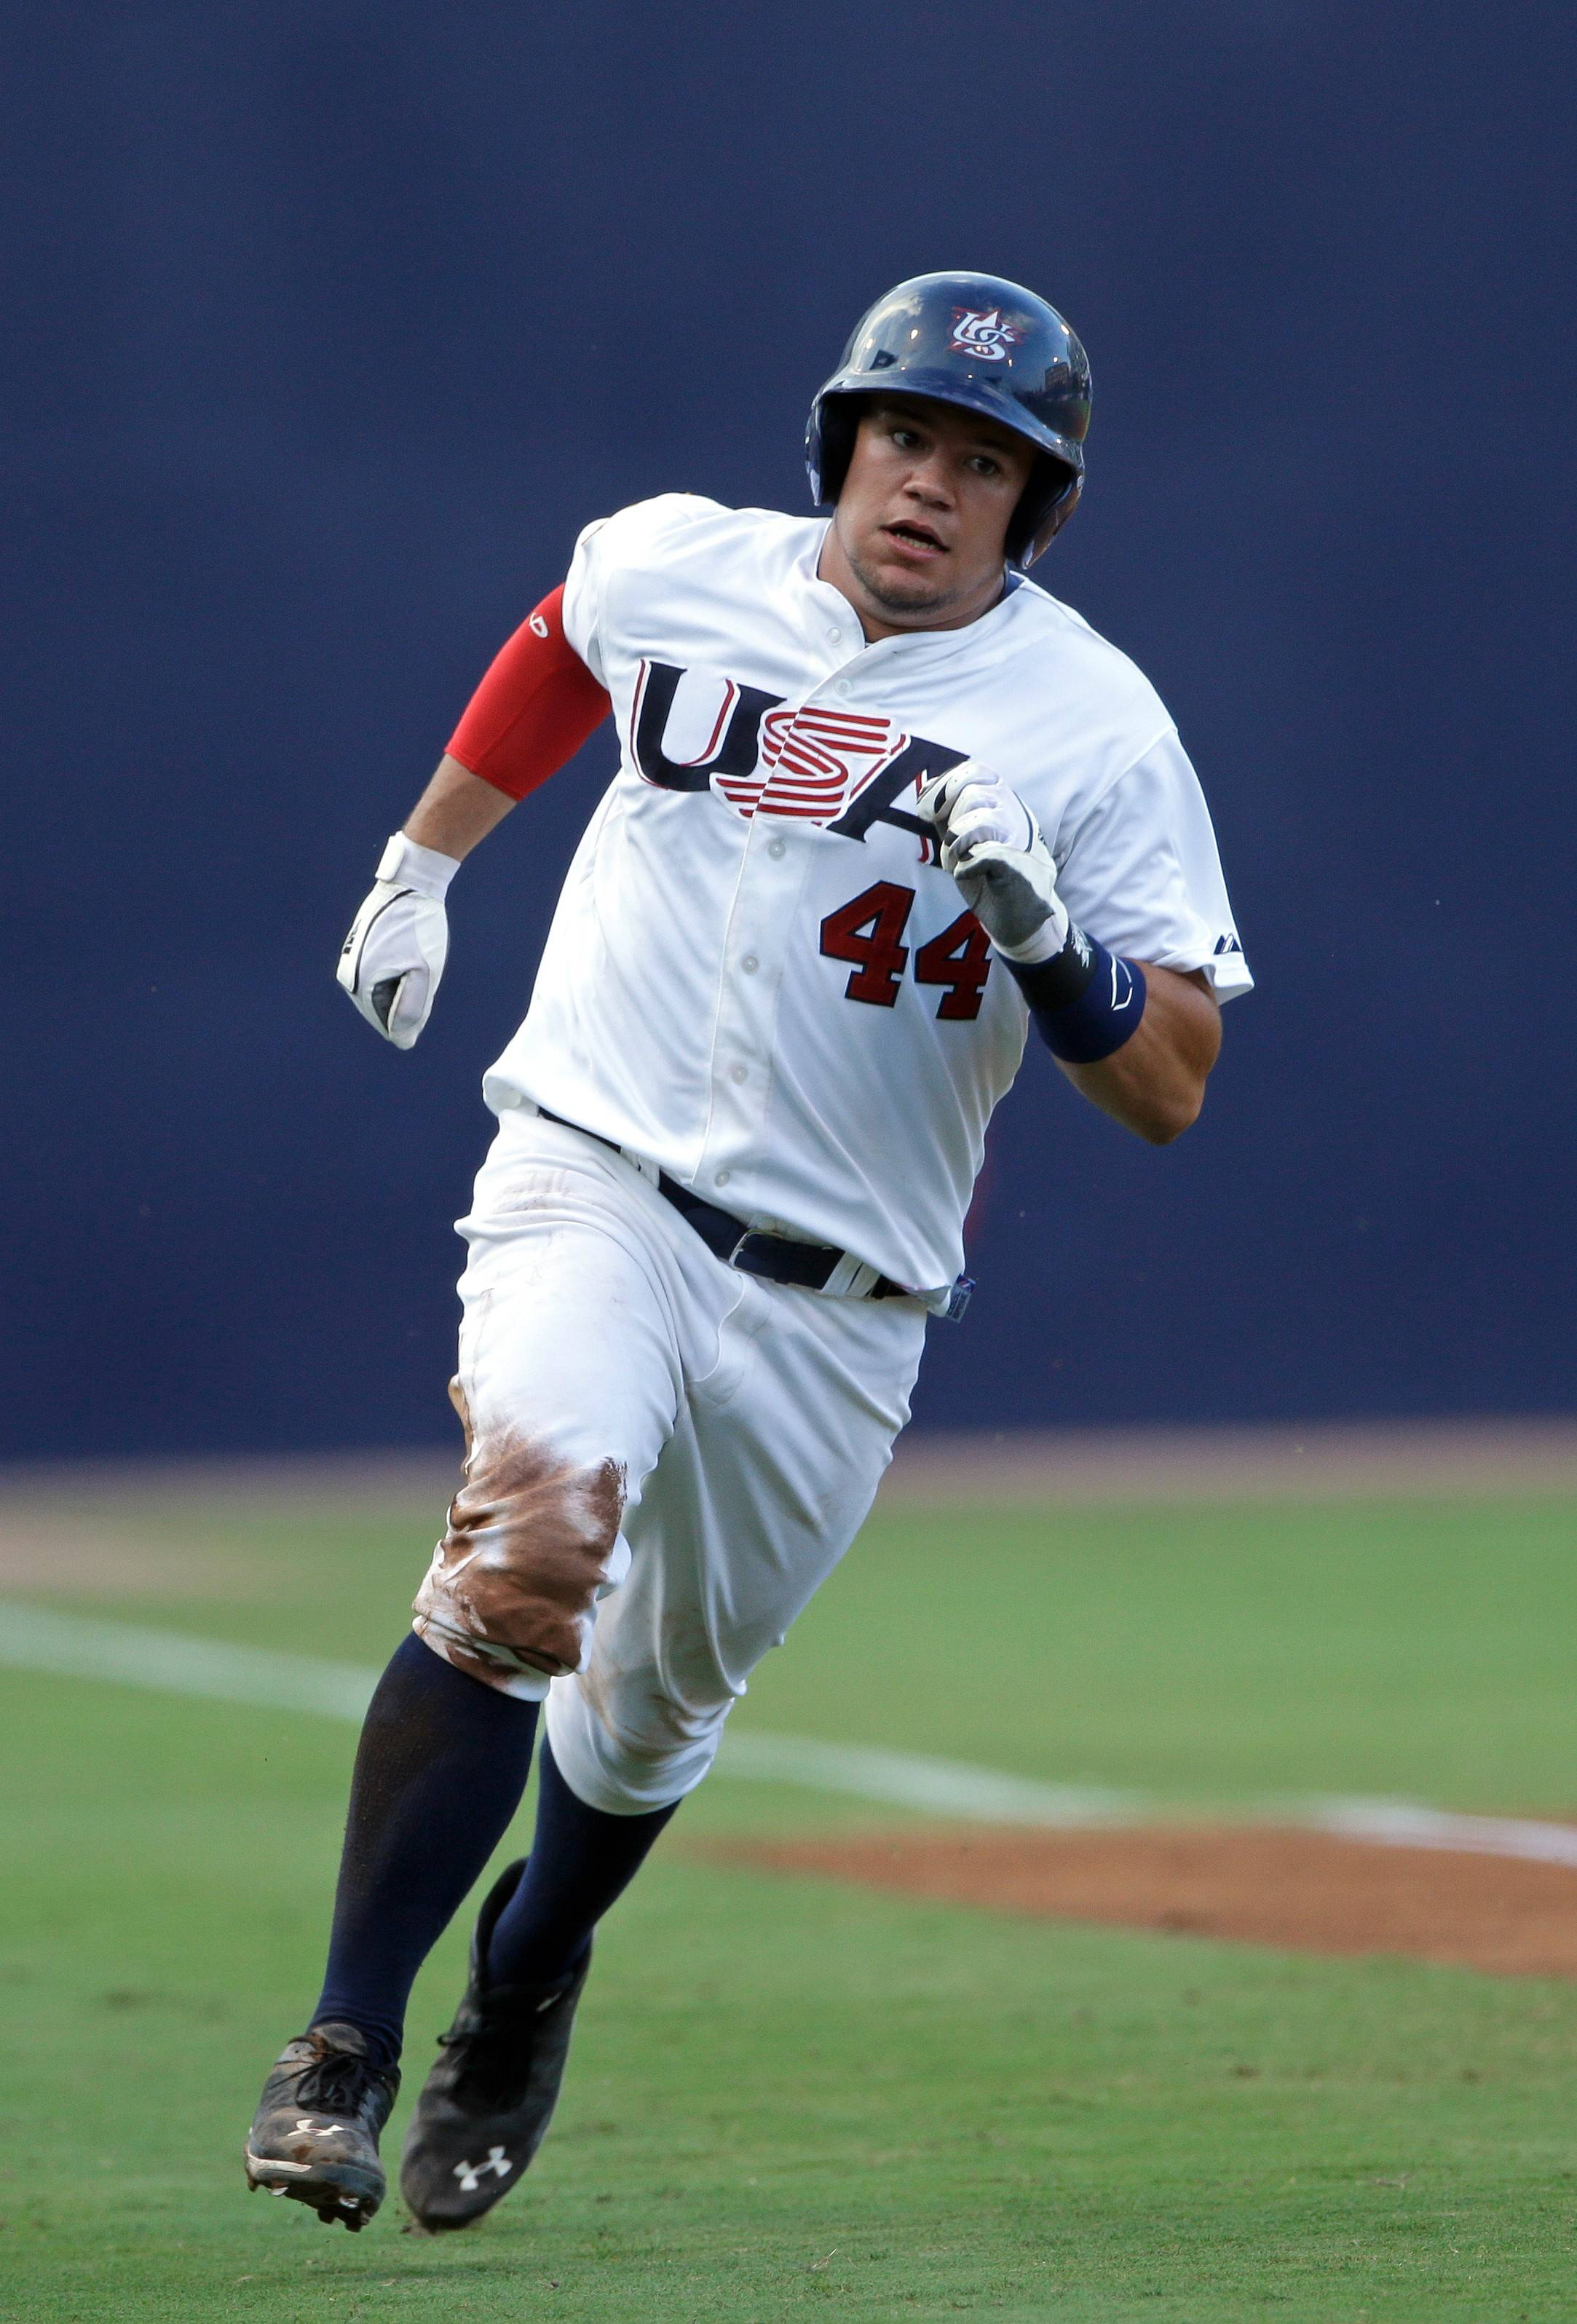 Associated PressThe United States' Kyle Schwarber (44) rounds third base heading for a run during a 2013 exhibition game against Cuba.